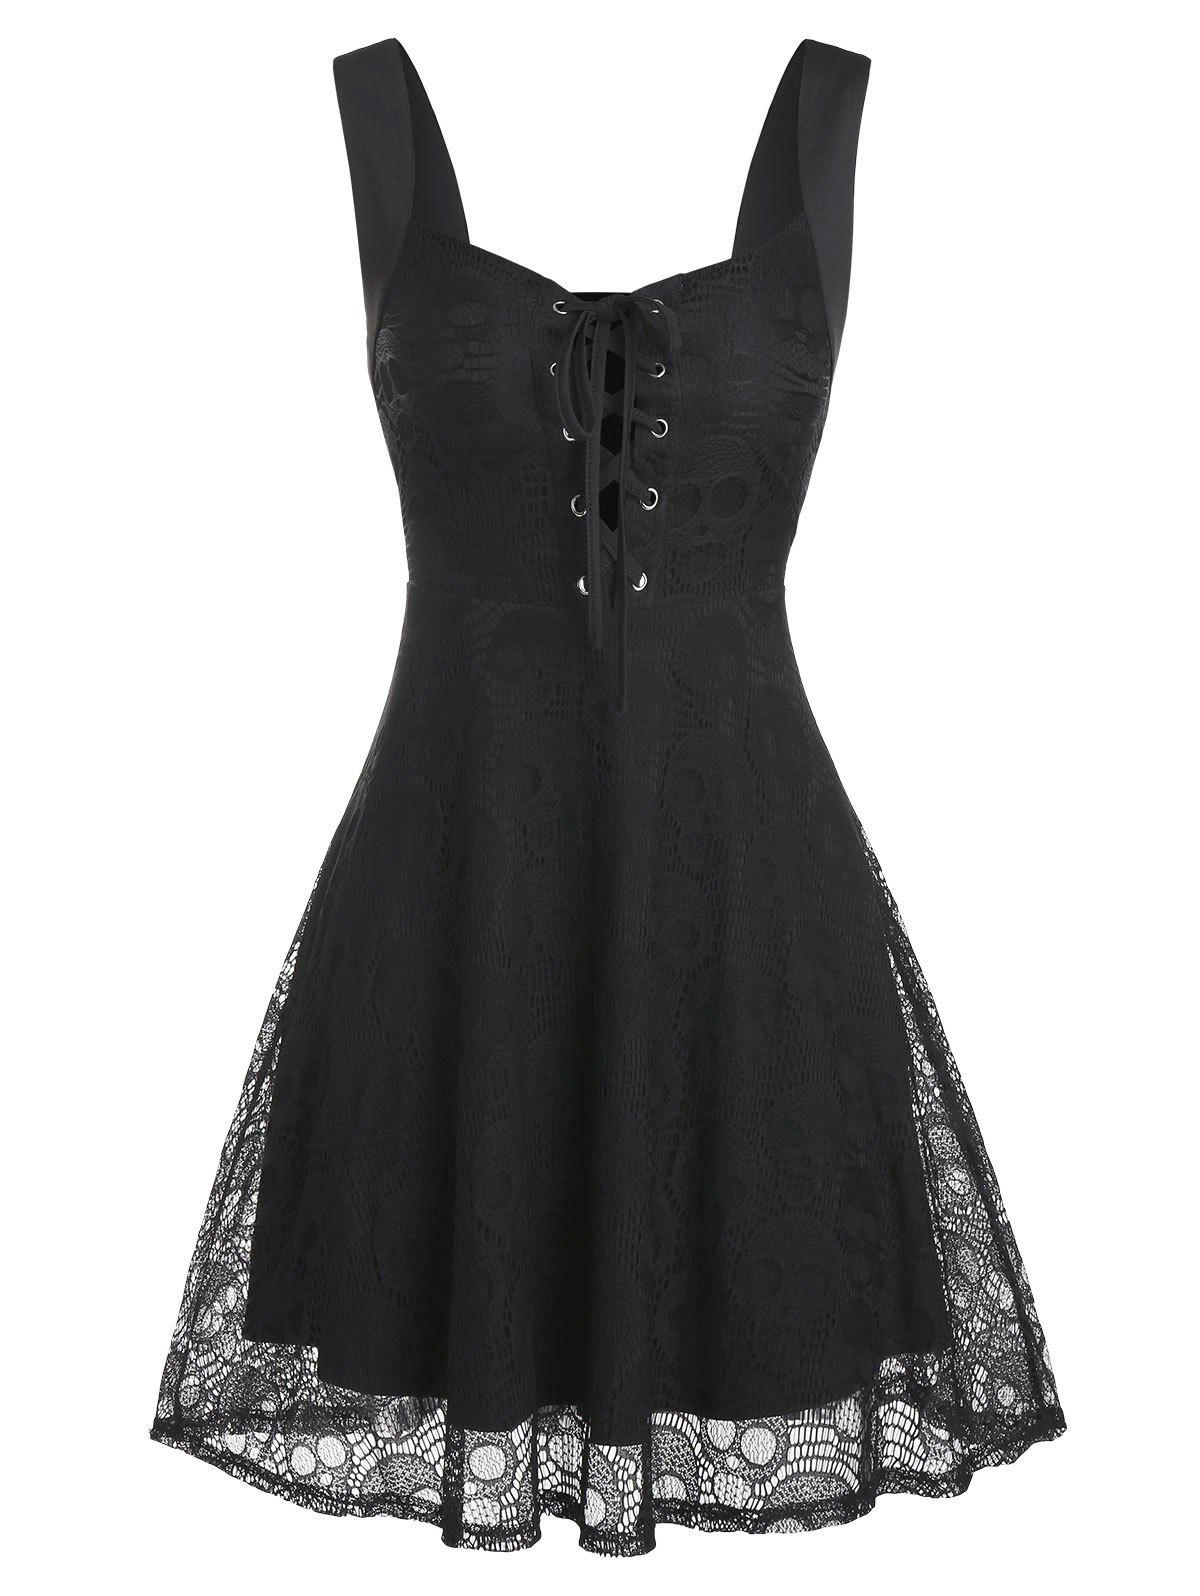 Affordable Lace-up Sleeveless Skull Lace Dress